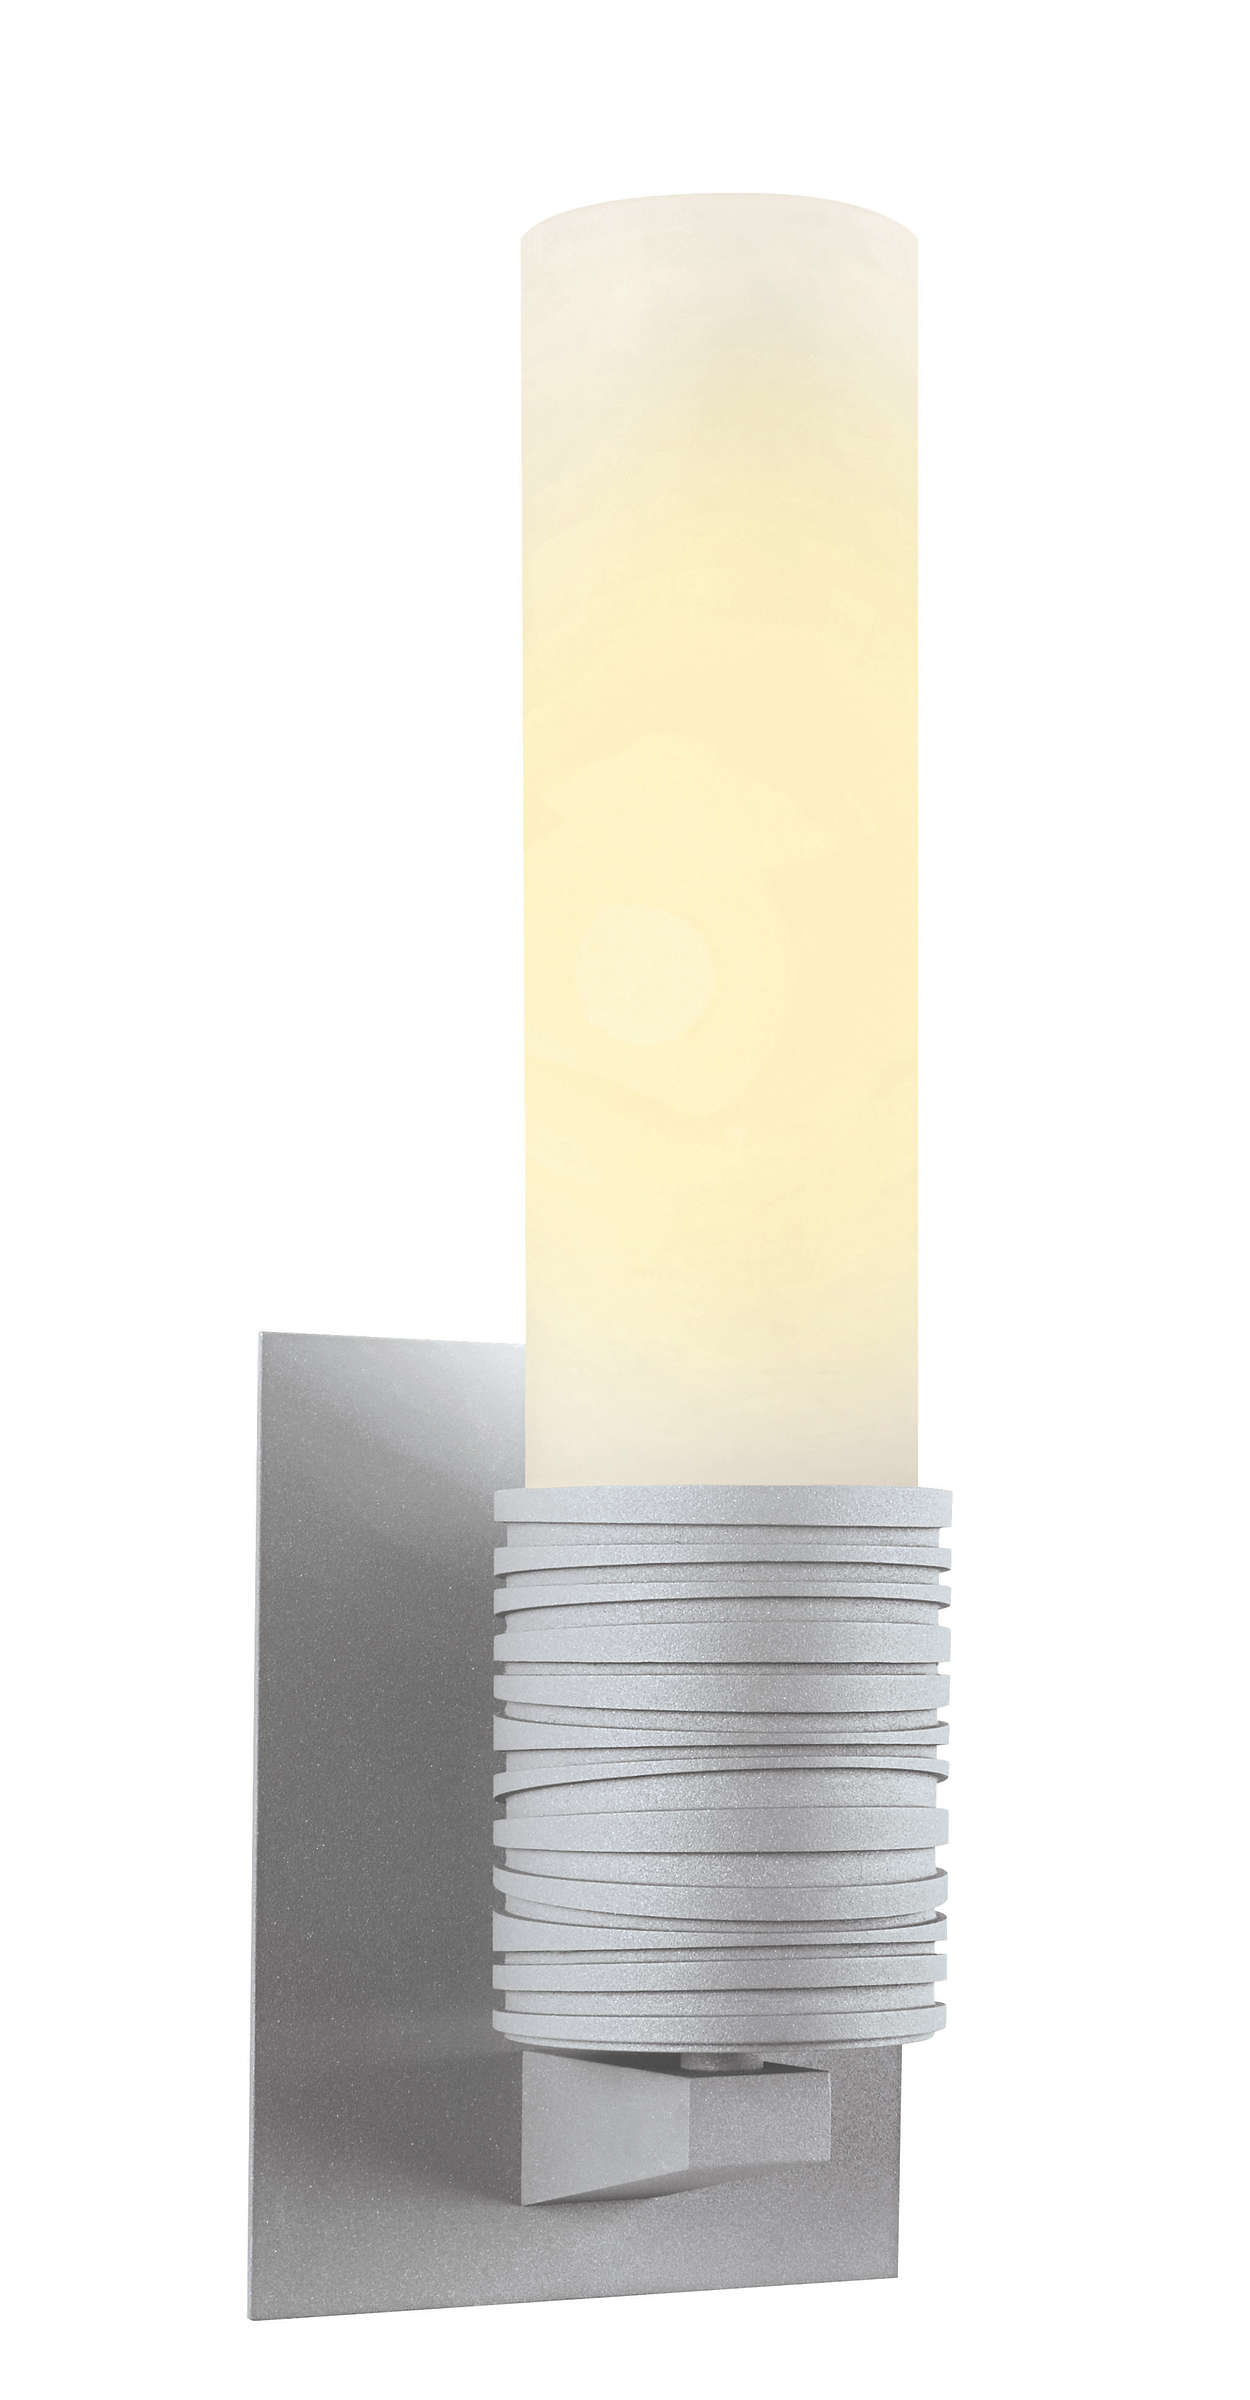 Phoenix 1-light CFL wall sconce in Graphite finish